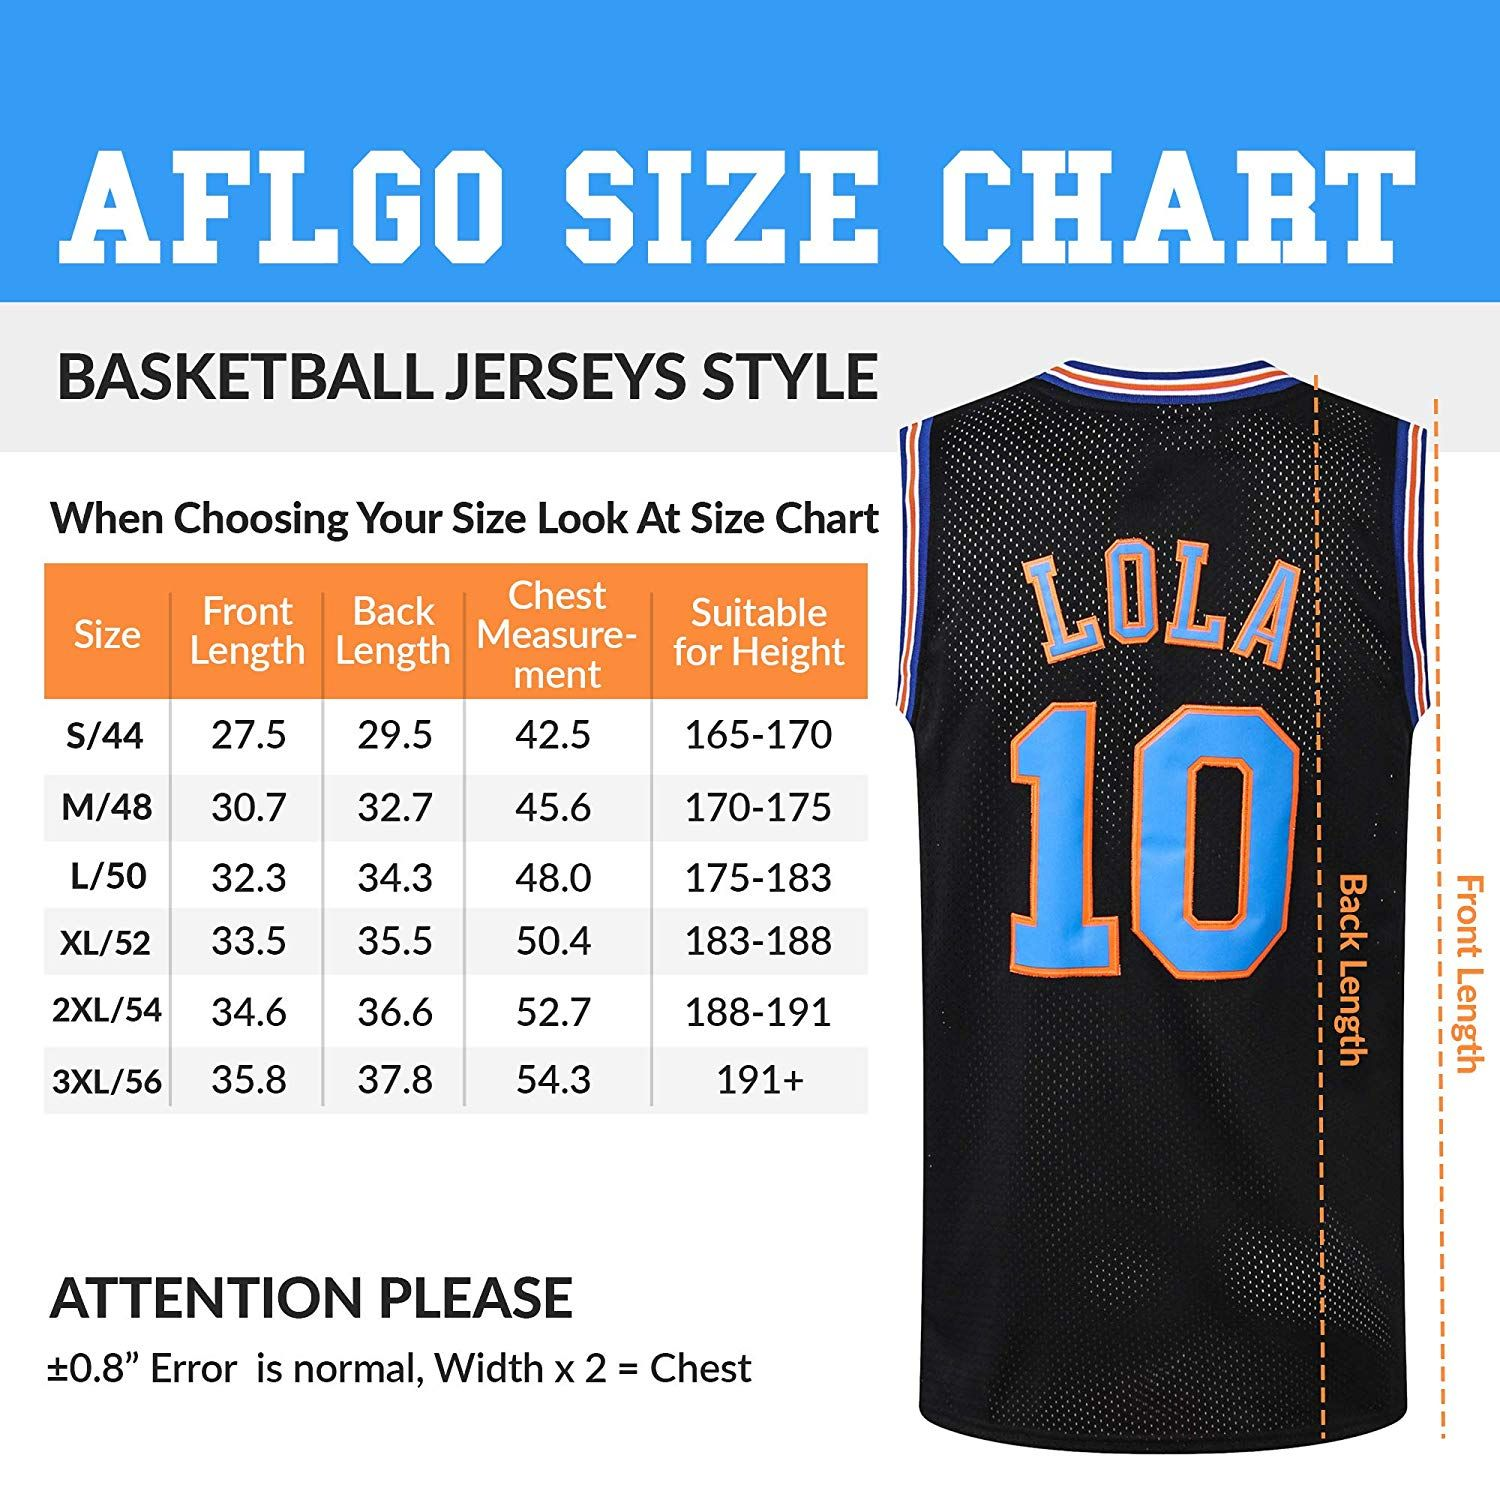 AFLGO Lola 10 Space Jersey Basketball Jerseys Include Set Glow in The Dark Wristbands Halloween Costumes